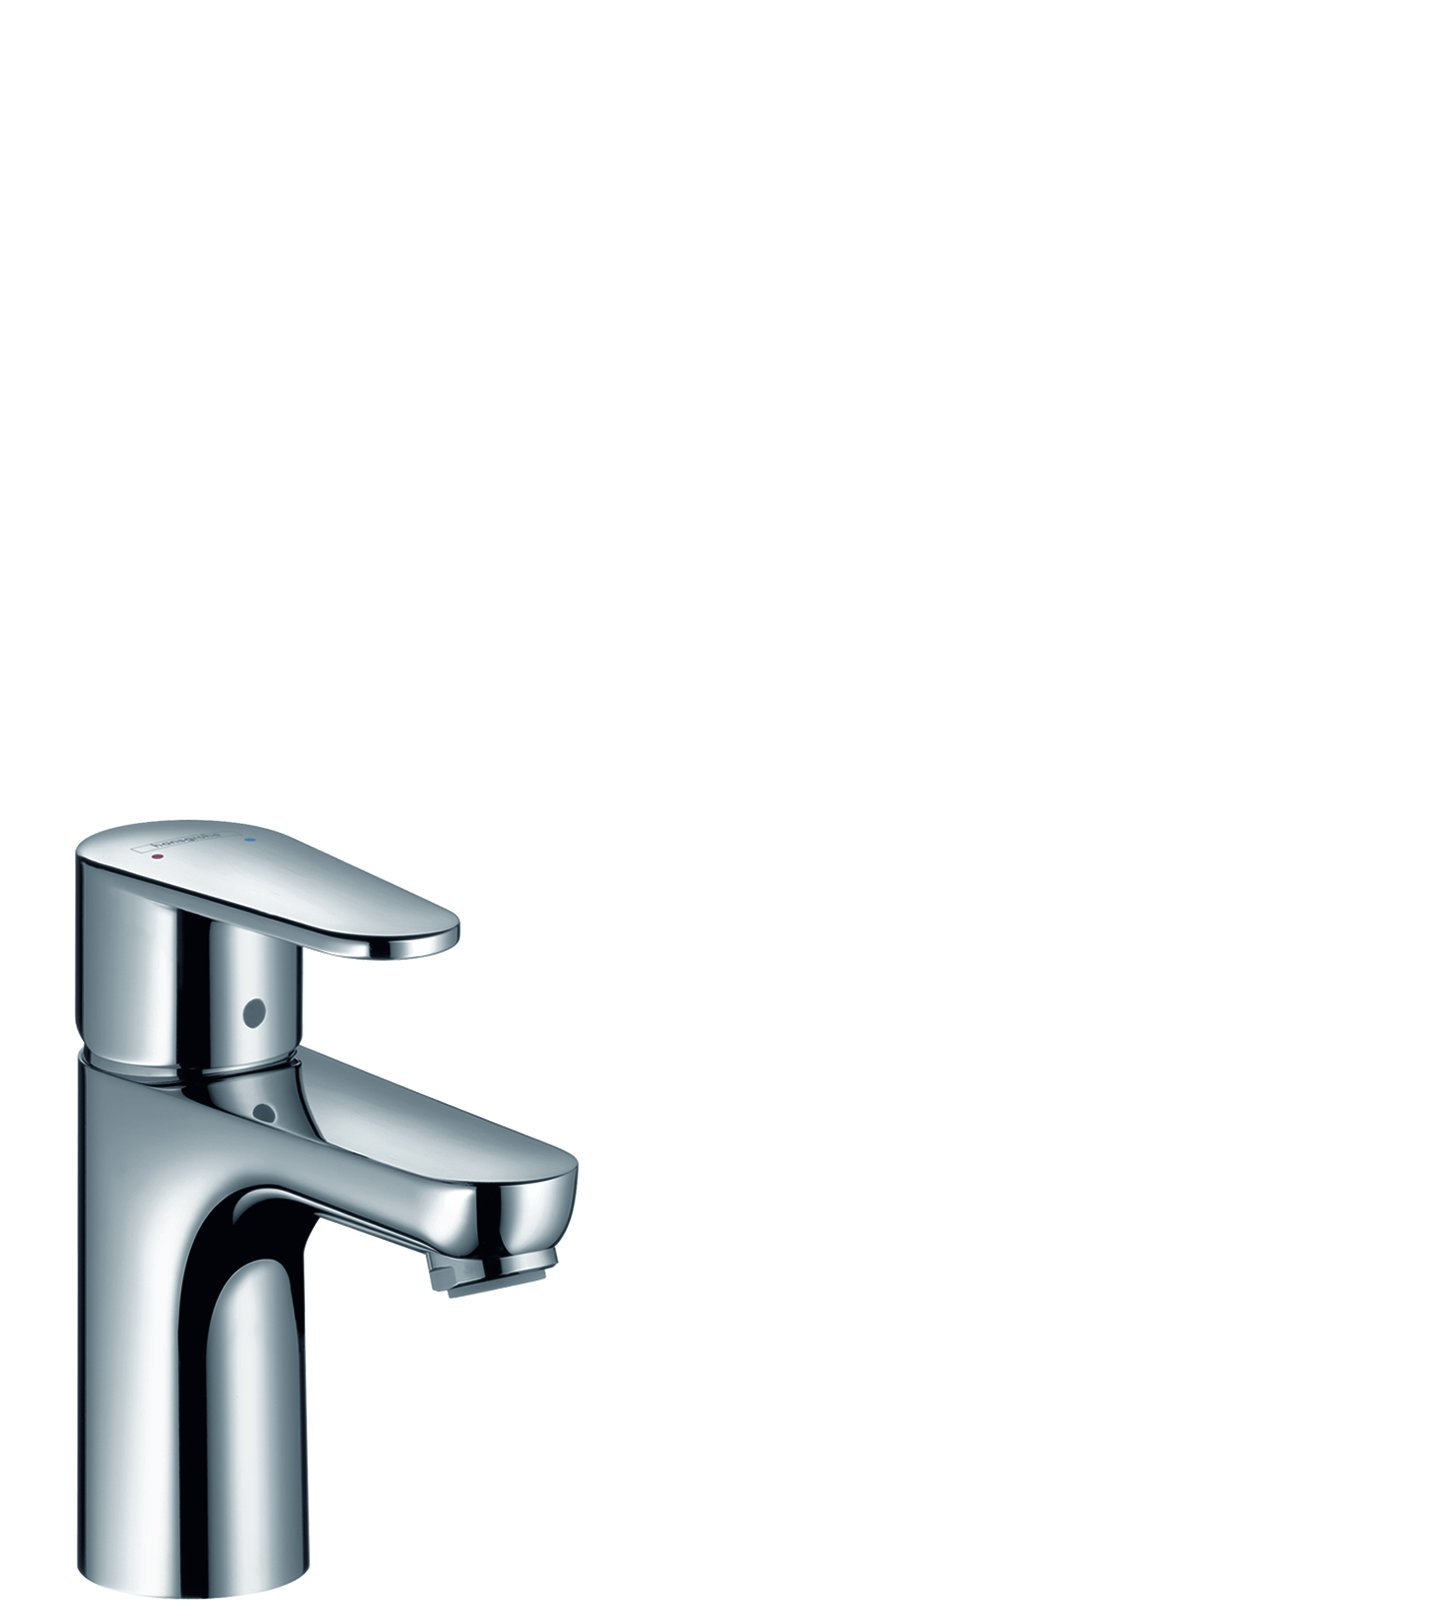 Hansgrohe Talis E² 31614000 Mixer Tap for Sinks without Drainage ...